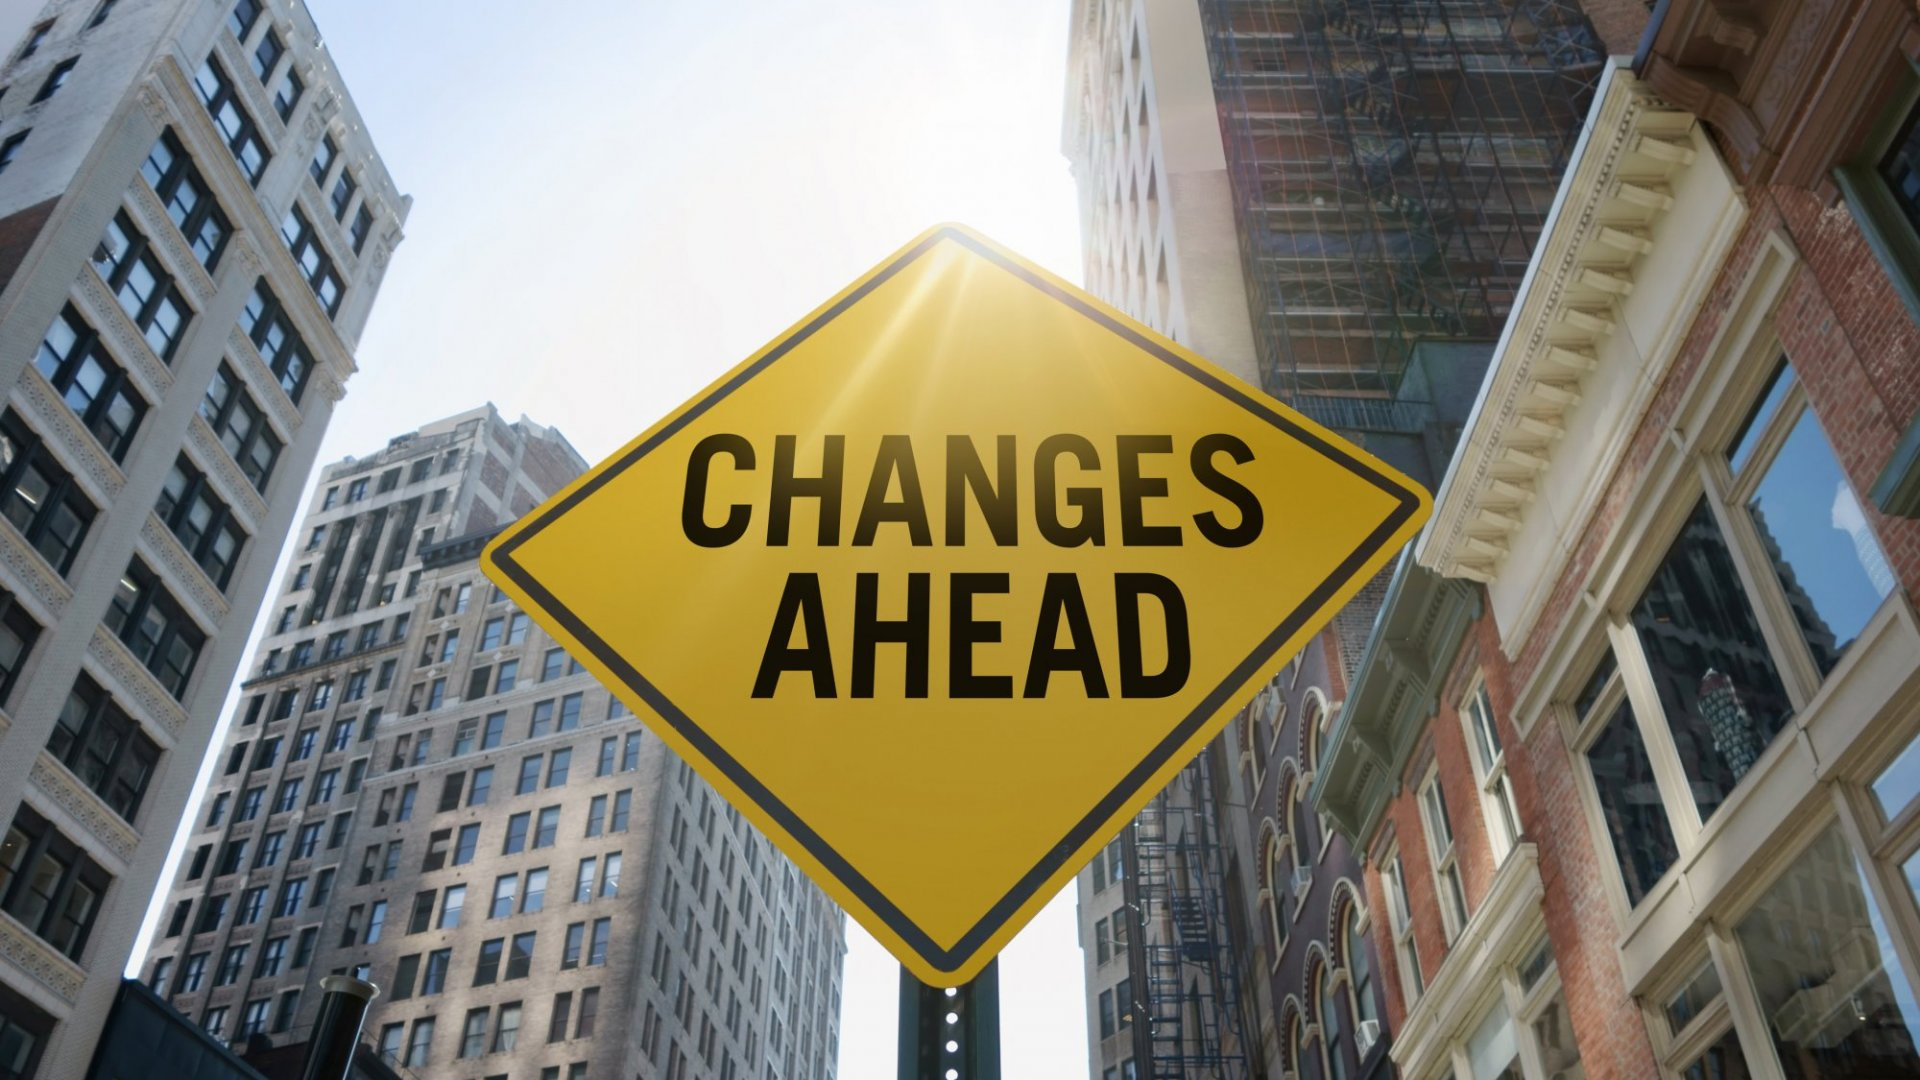 The Top Change Management Books of 2018 (So Far)